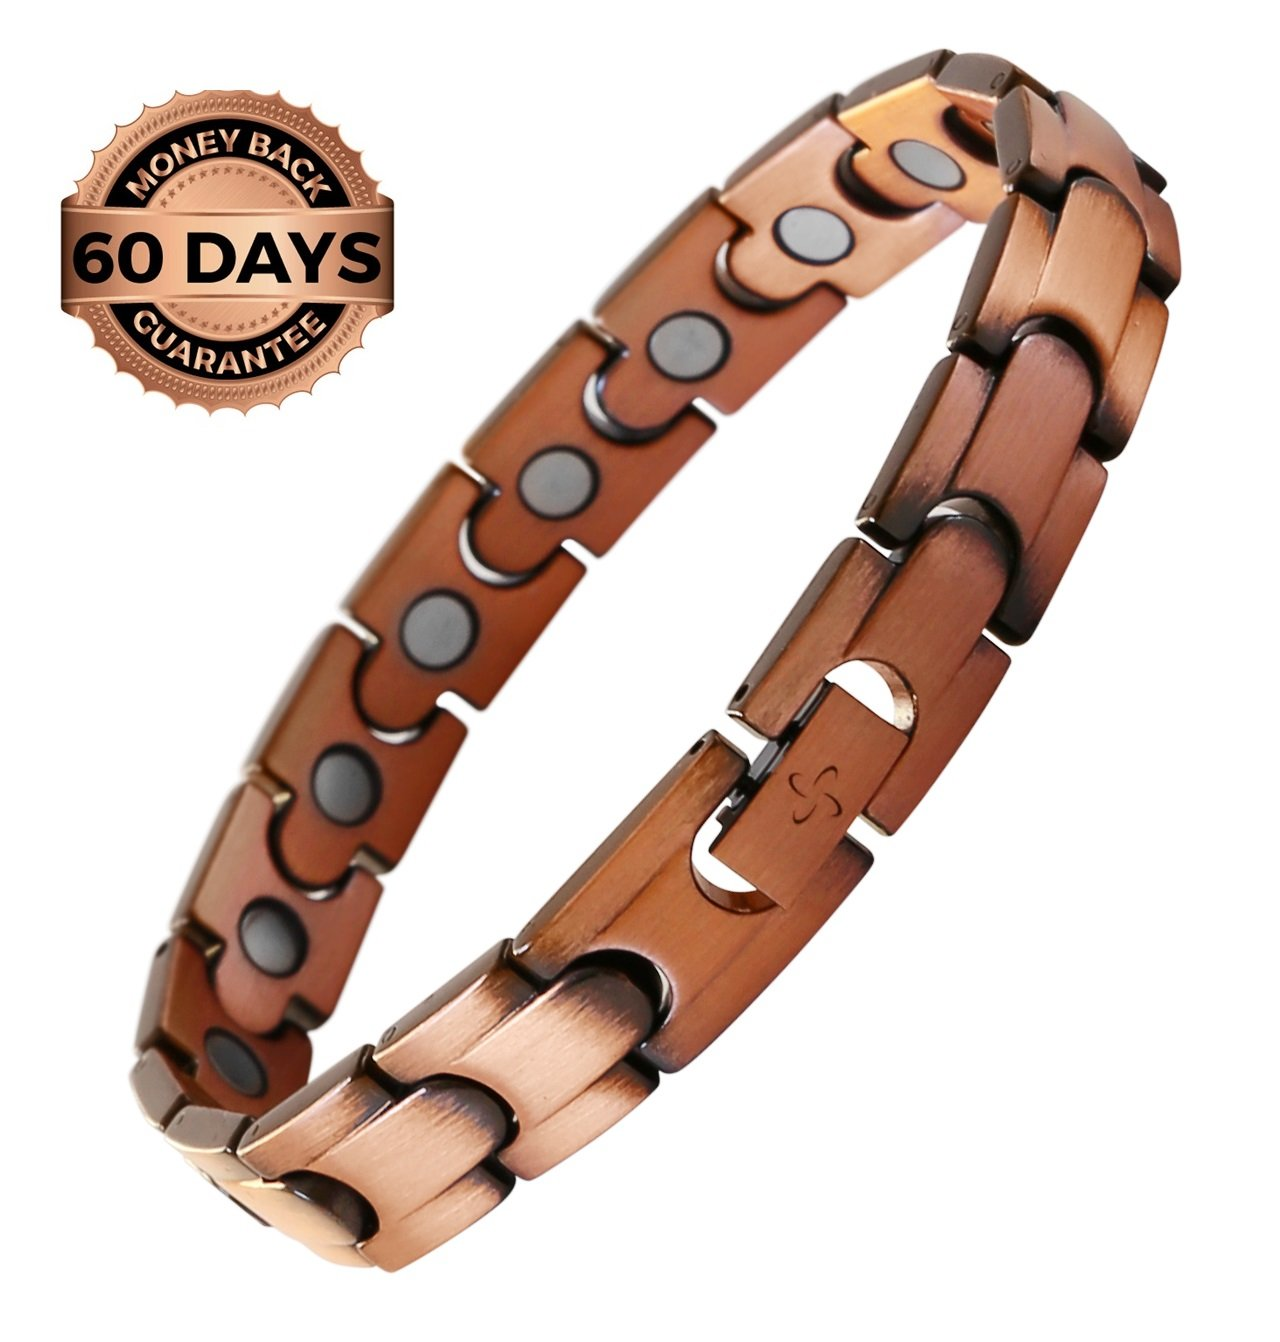 Reevaria Mens Elegant Guaranteed 99.9% Pure Copper Magnetic Therapy Bracelet Pain Relief Arthritis Carpal Tunnel, 3500 Gauss Links by Reevaria (Image #1)